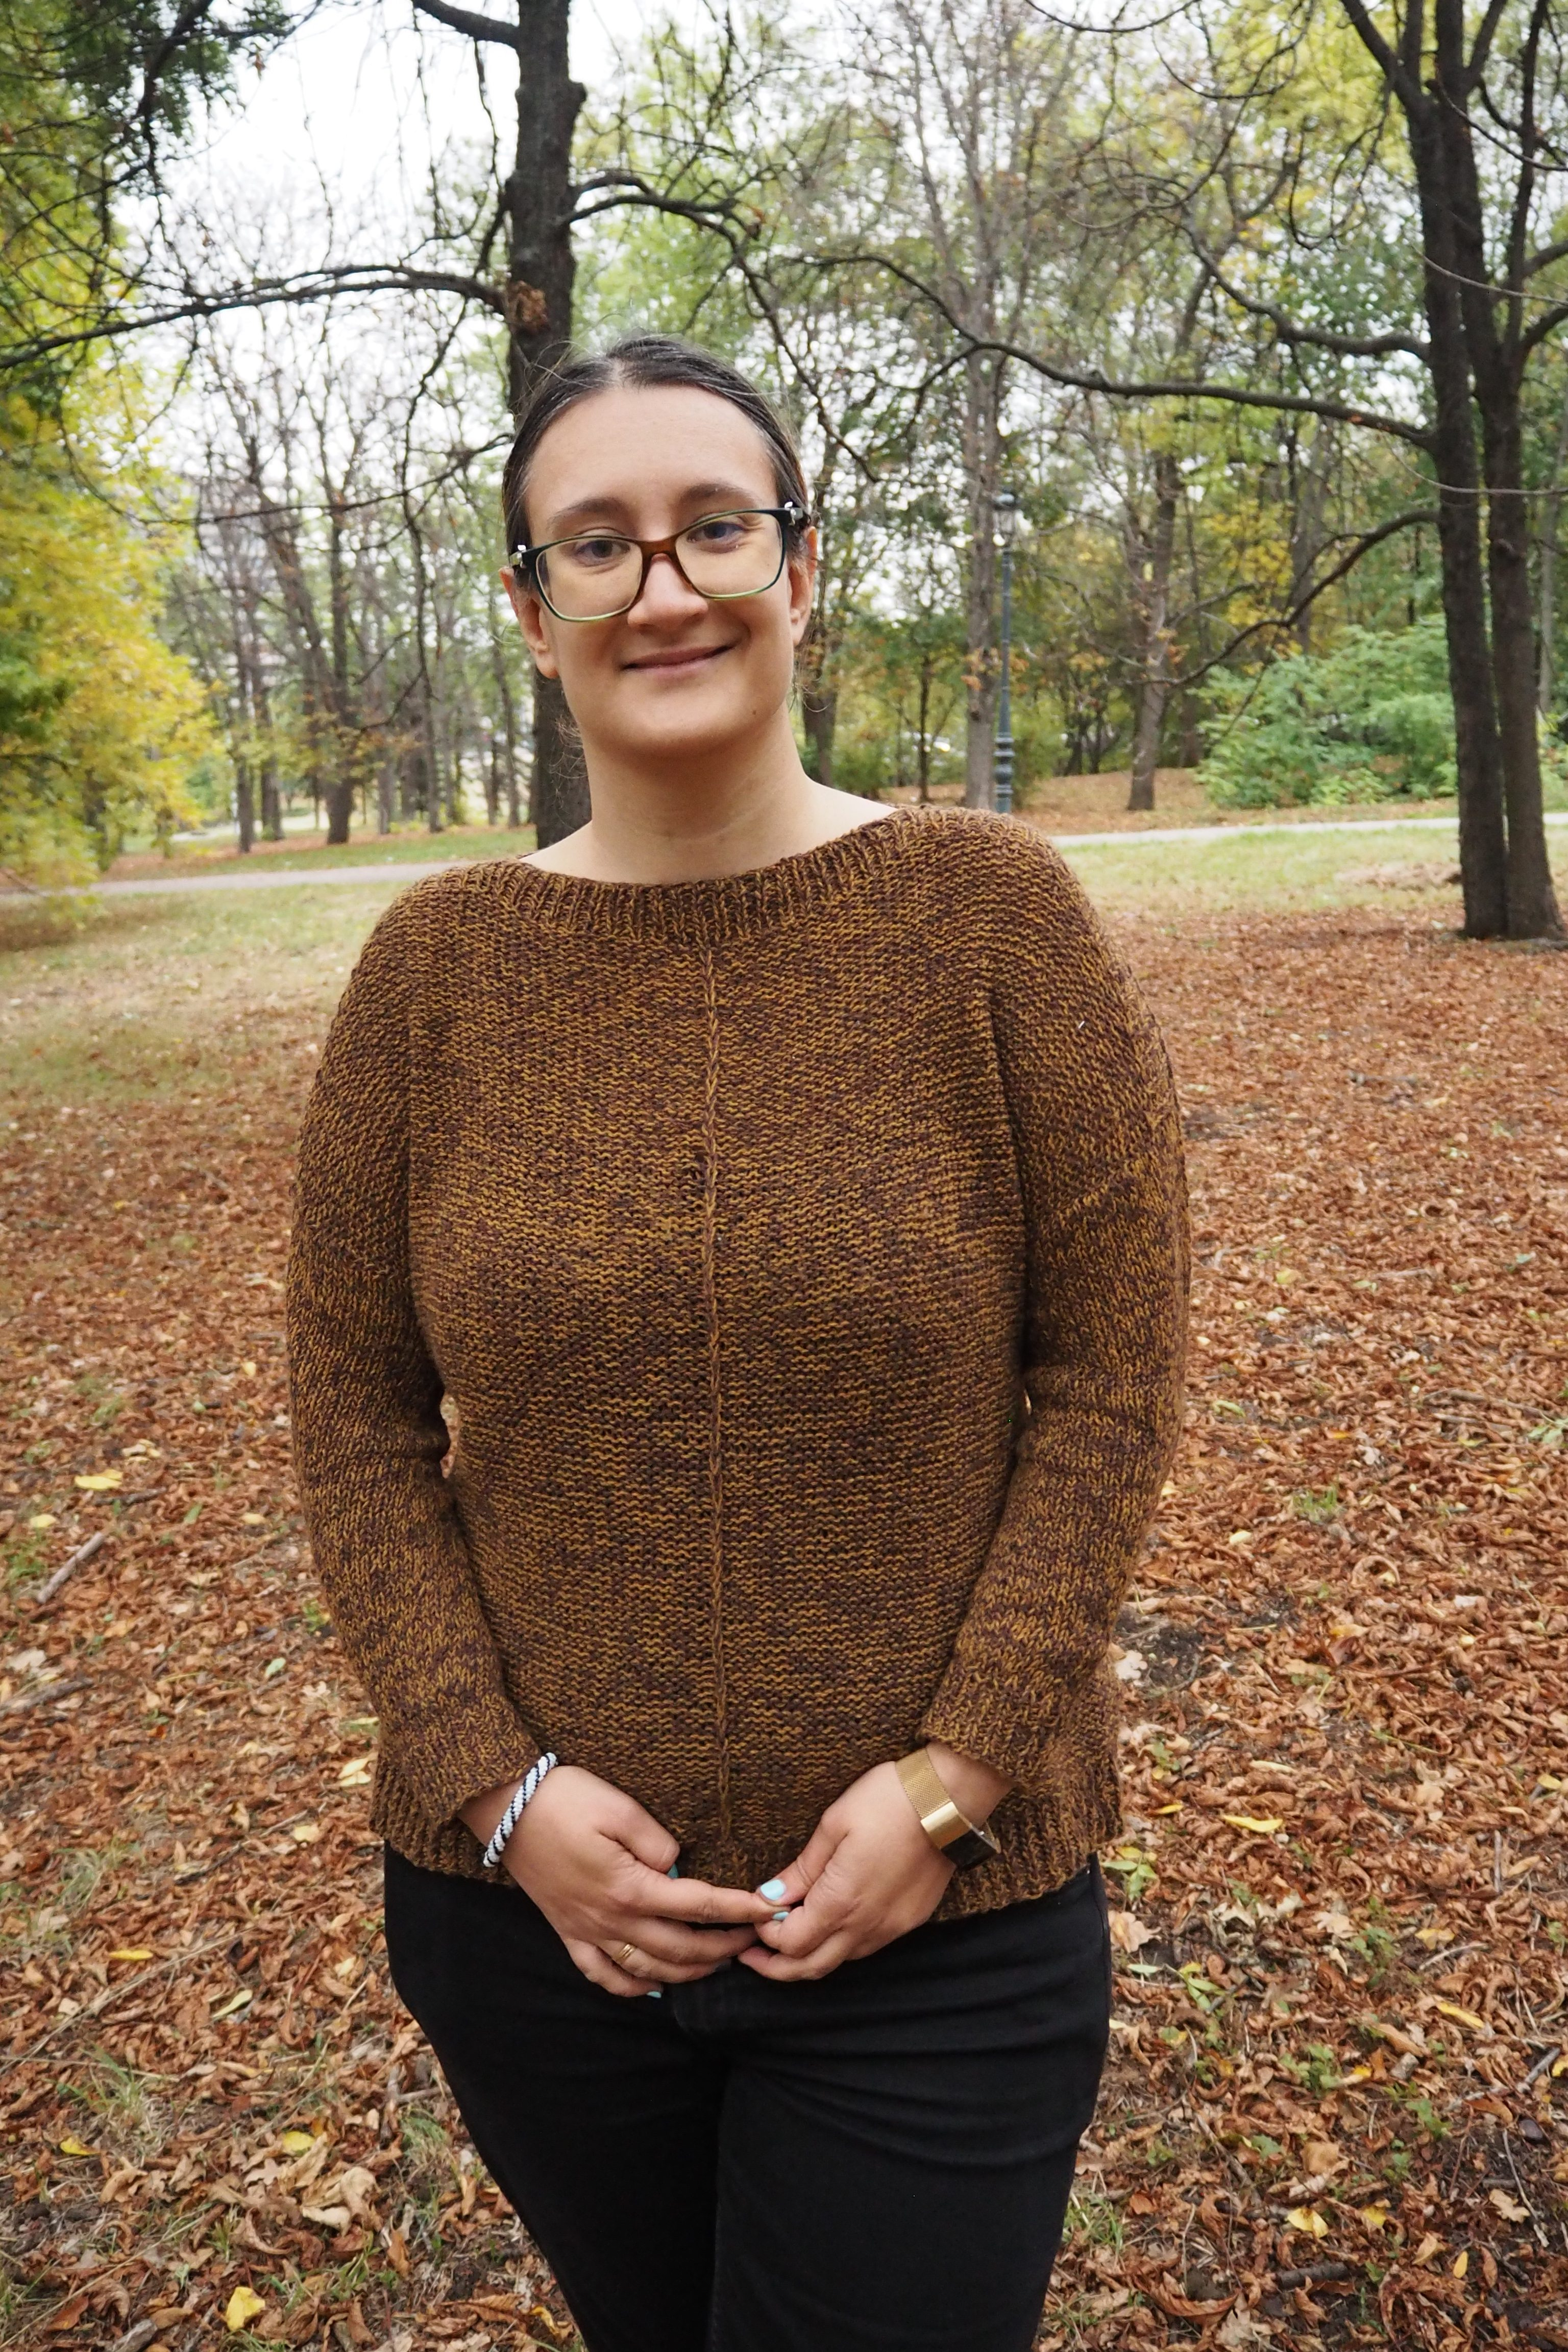 The Weekender by Andrea Mowry – Finished object